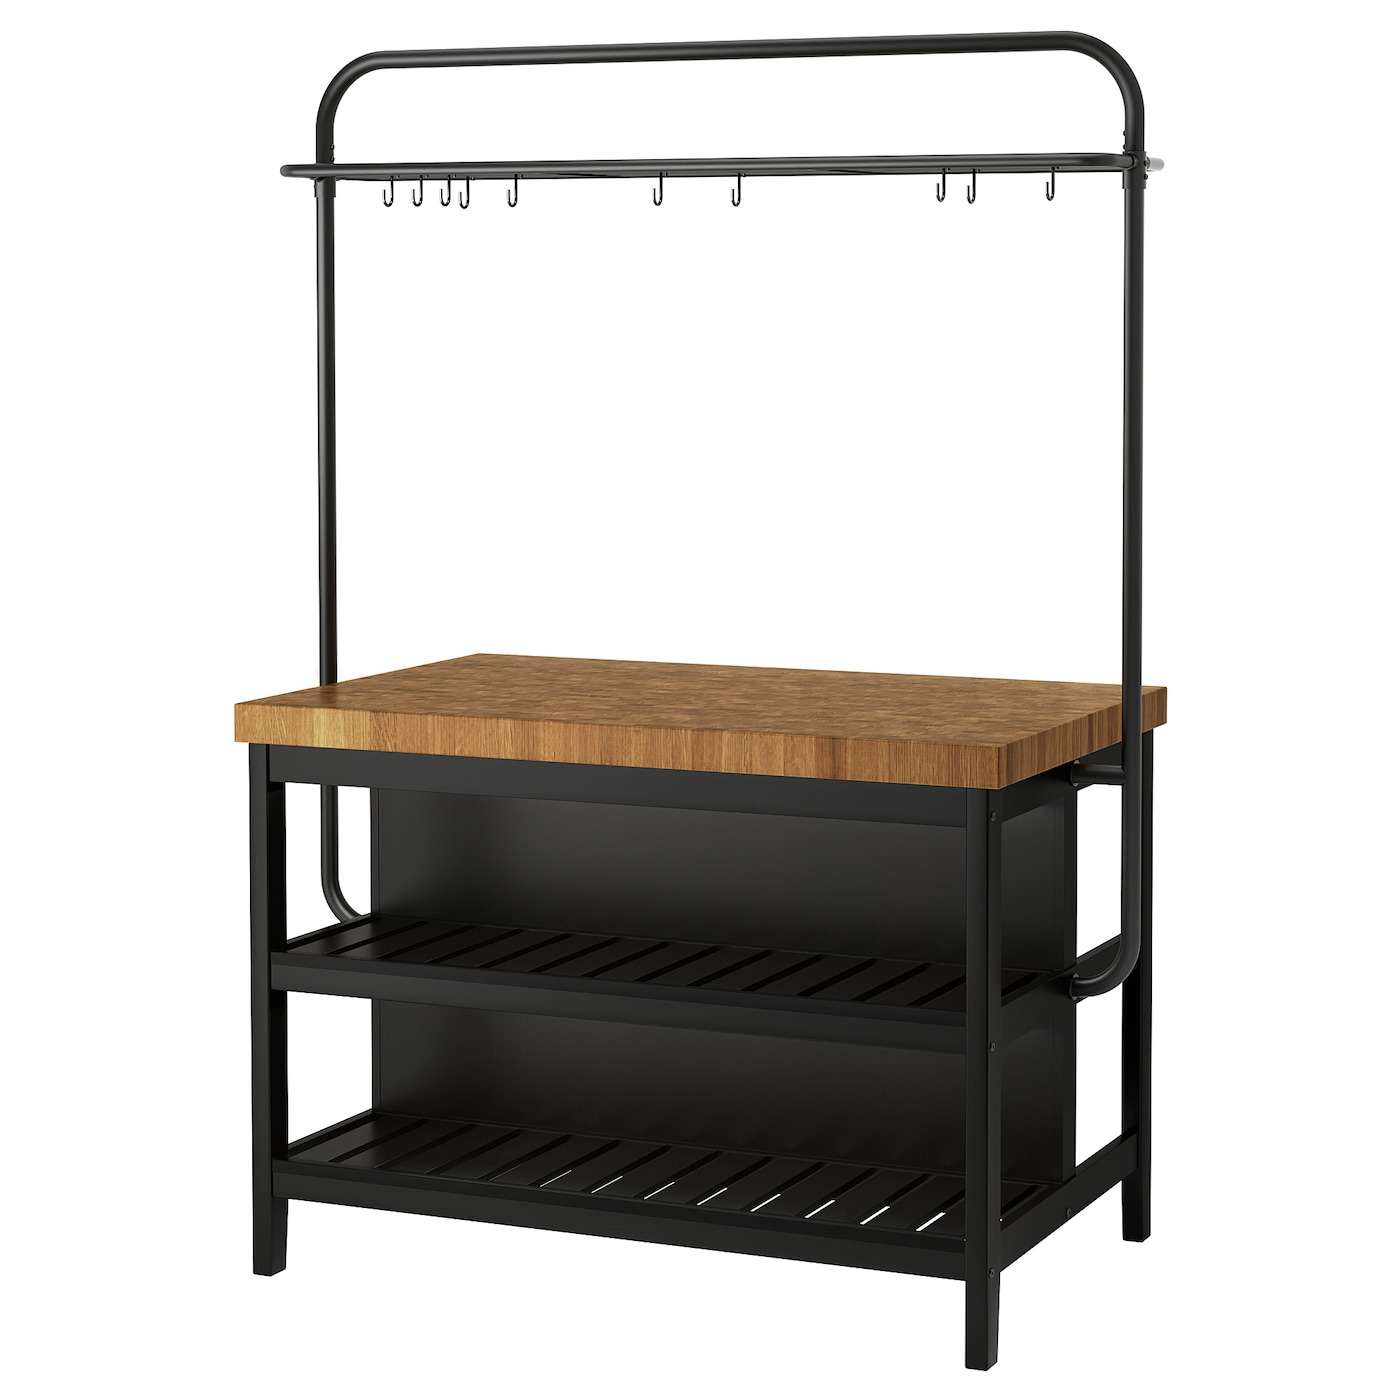 IKEA VADHOLMA kitchen island with rack Gives you extra storage in your kitchen.